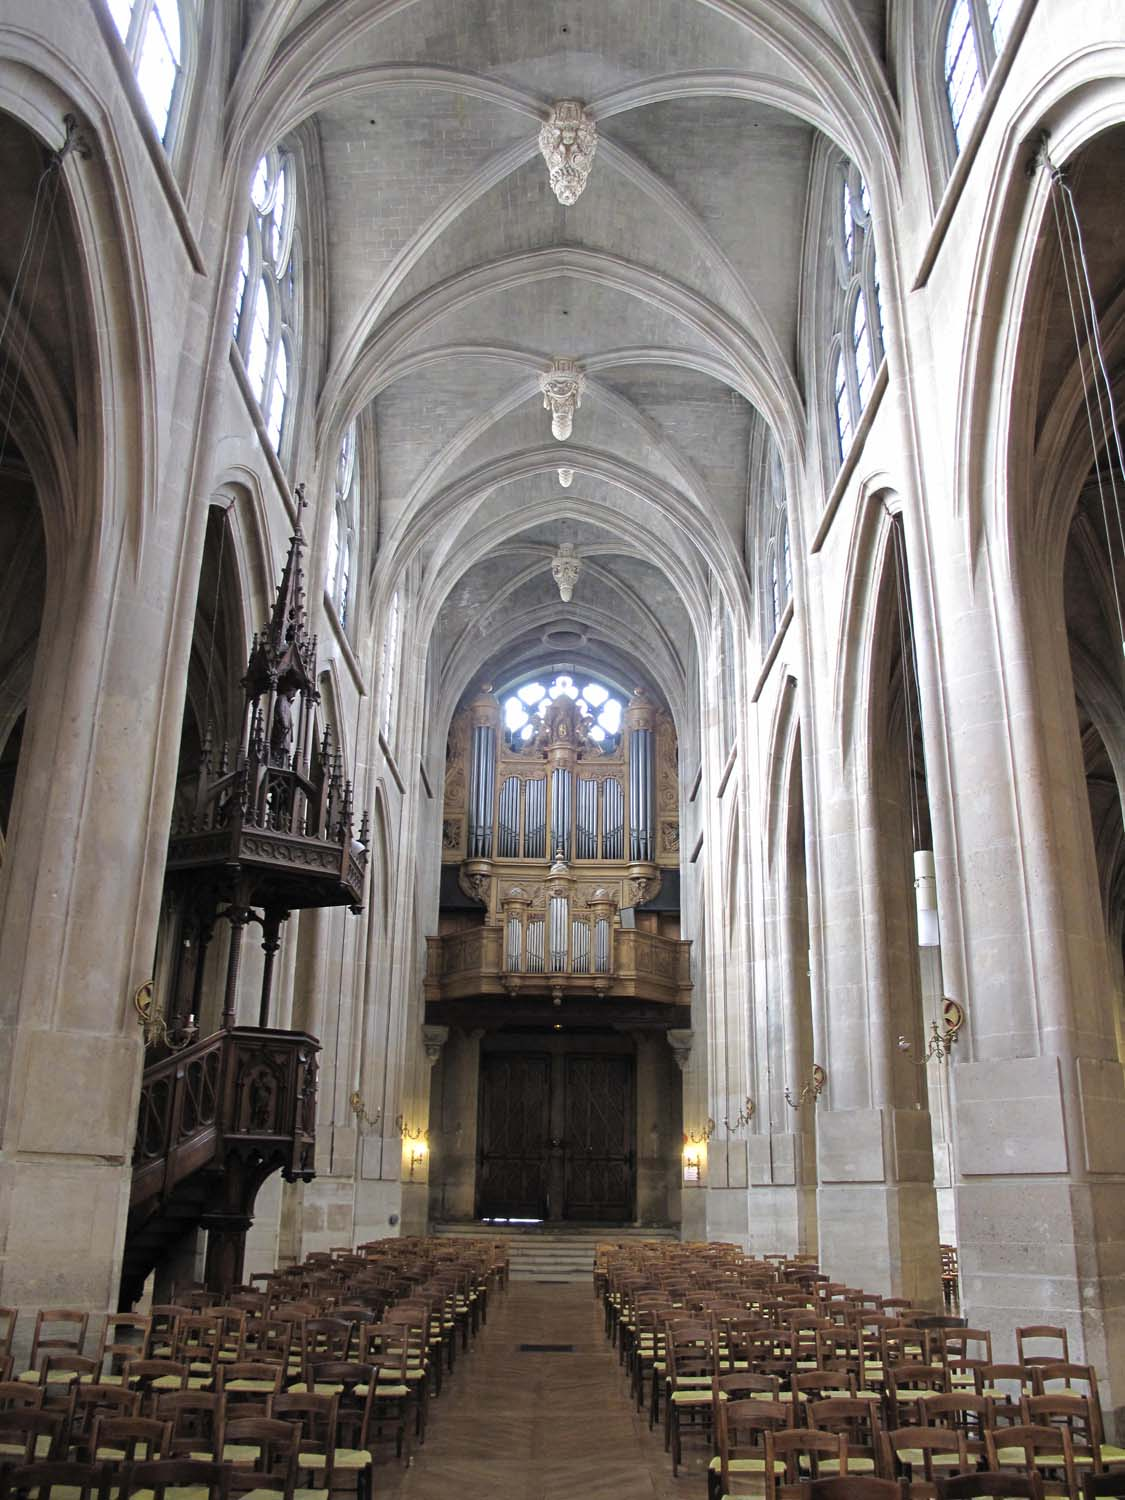 The aisle of Saint-Laurent